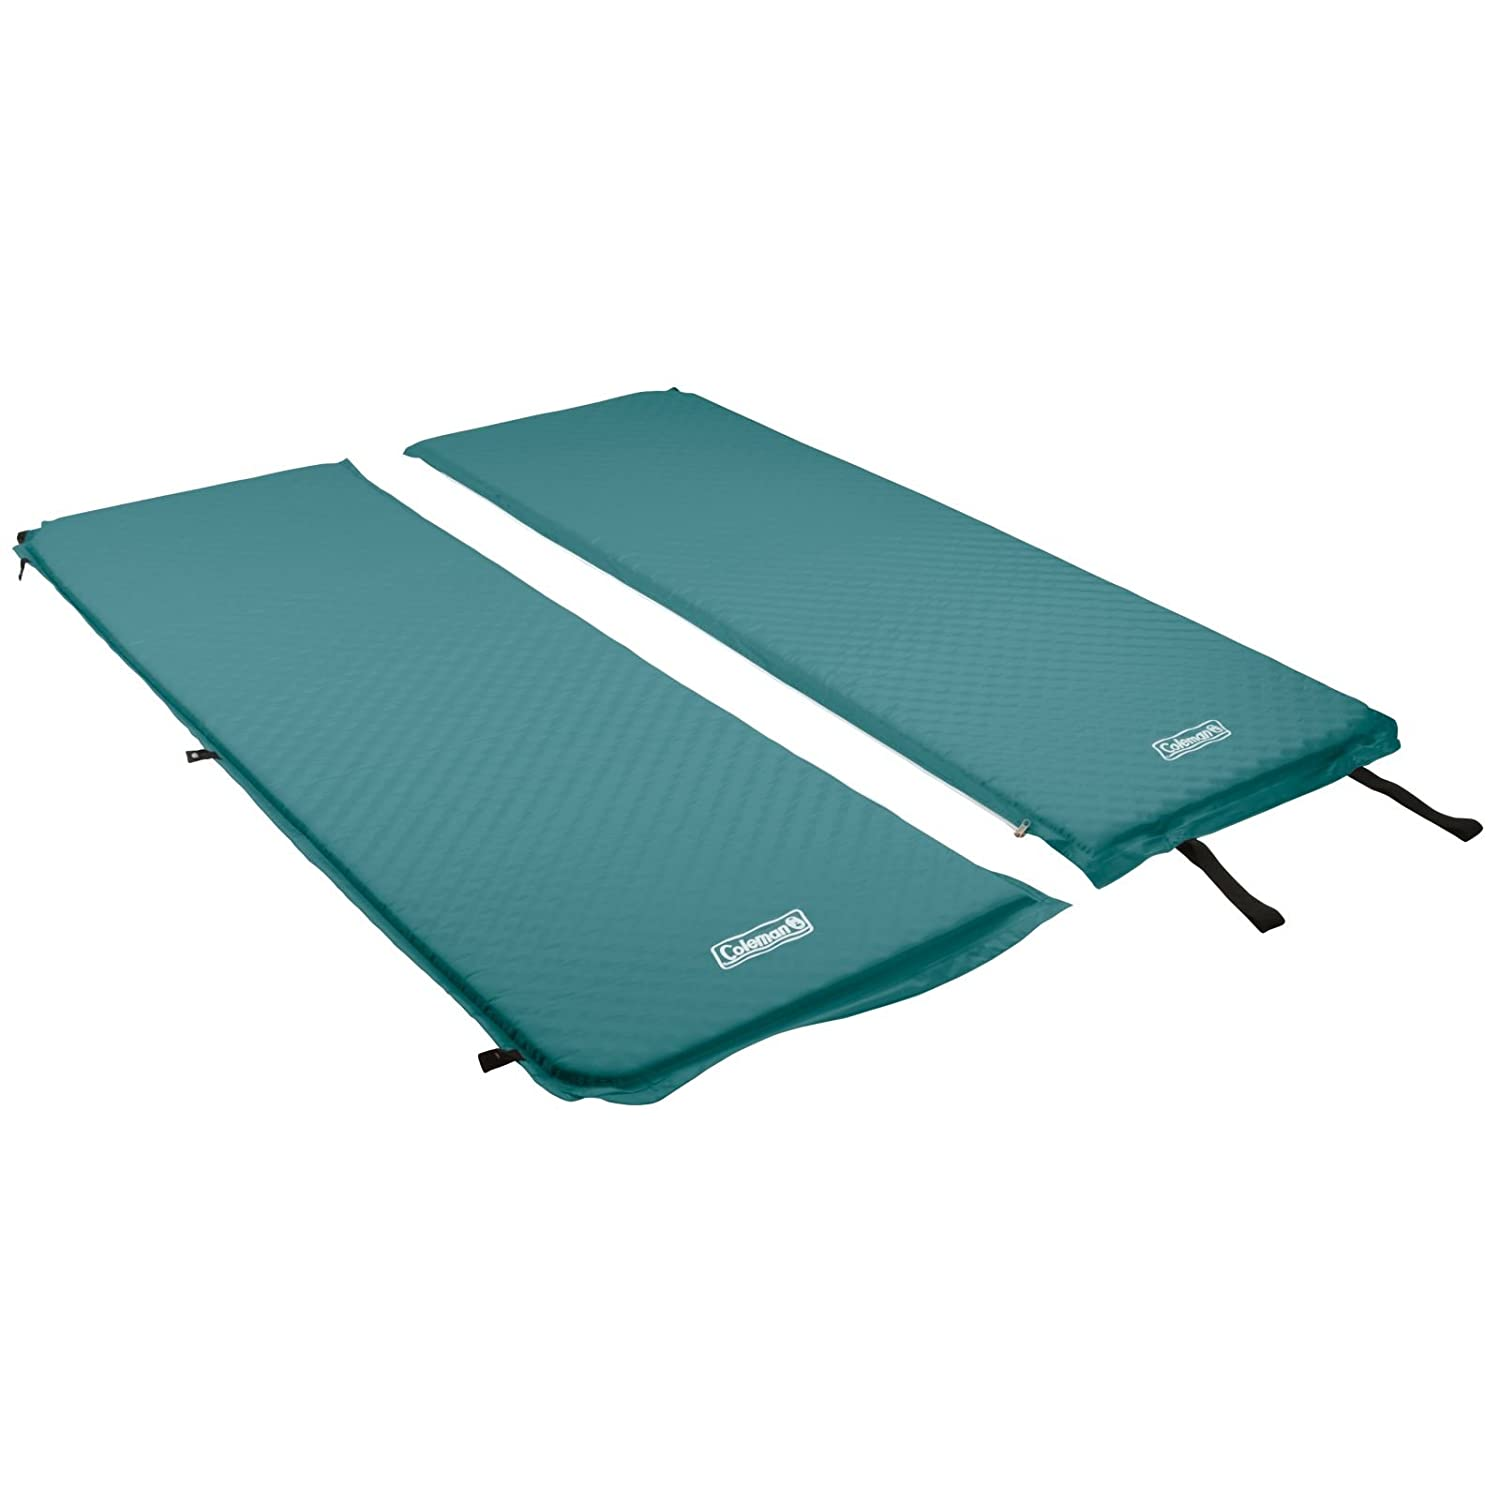 Coleman 4-in-1 Double Self-Inflating Camp Pad: Amazon.ca: Sports & Outdoors